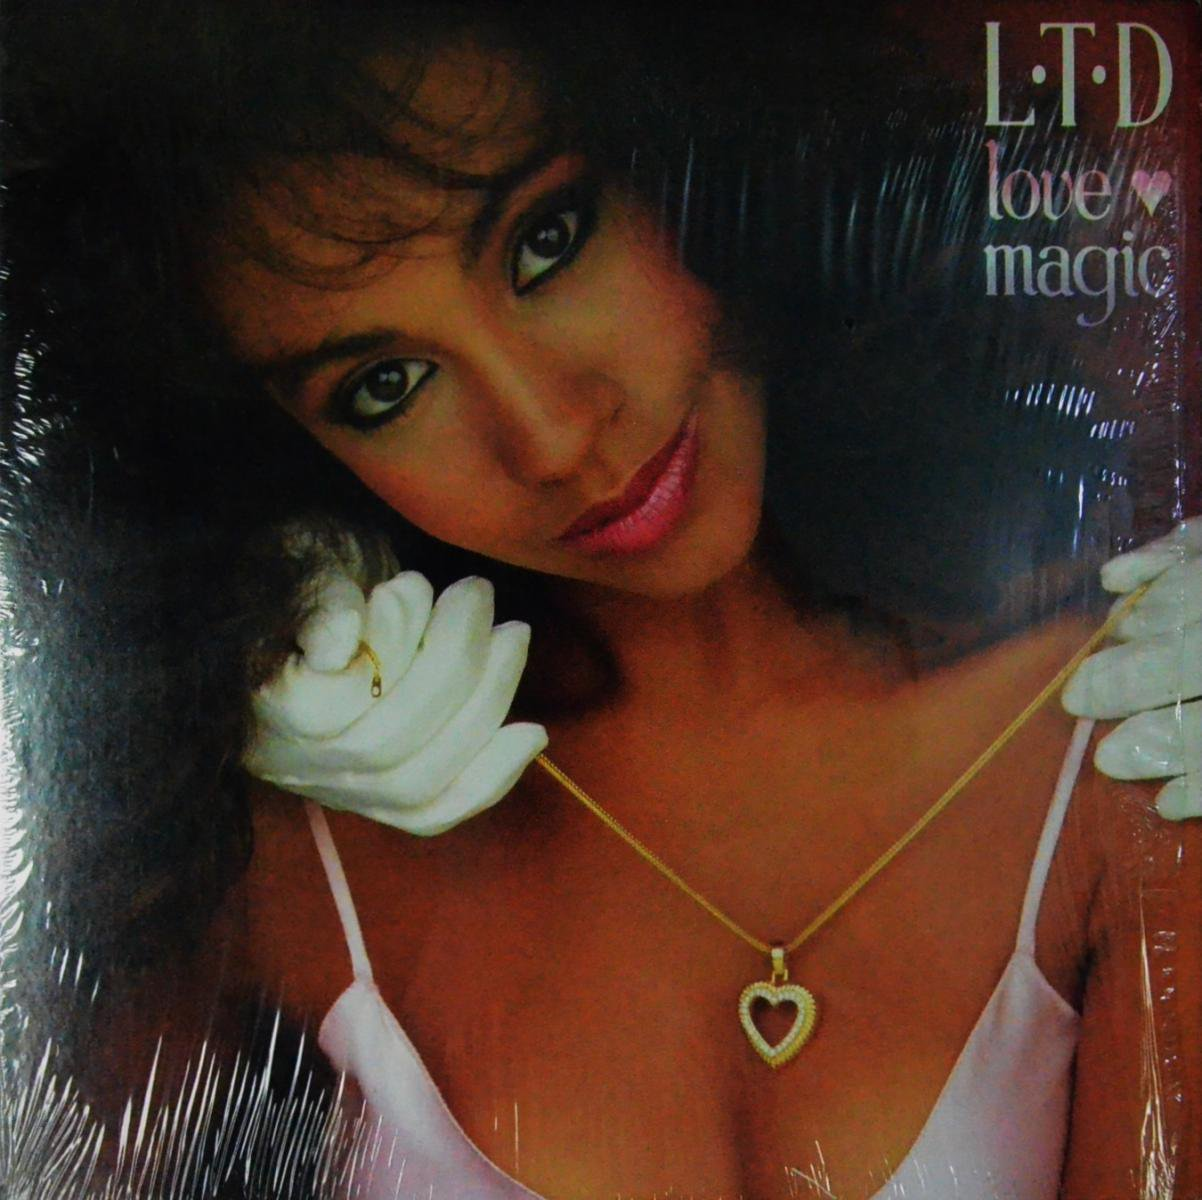 L.T.D. / LOVE MAGIC (LP)